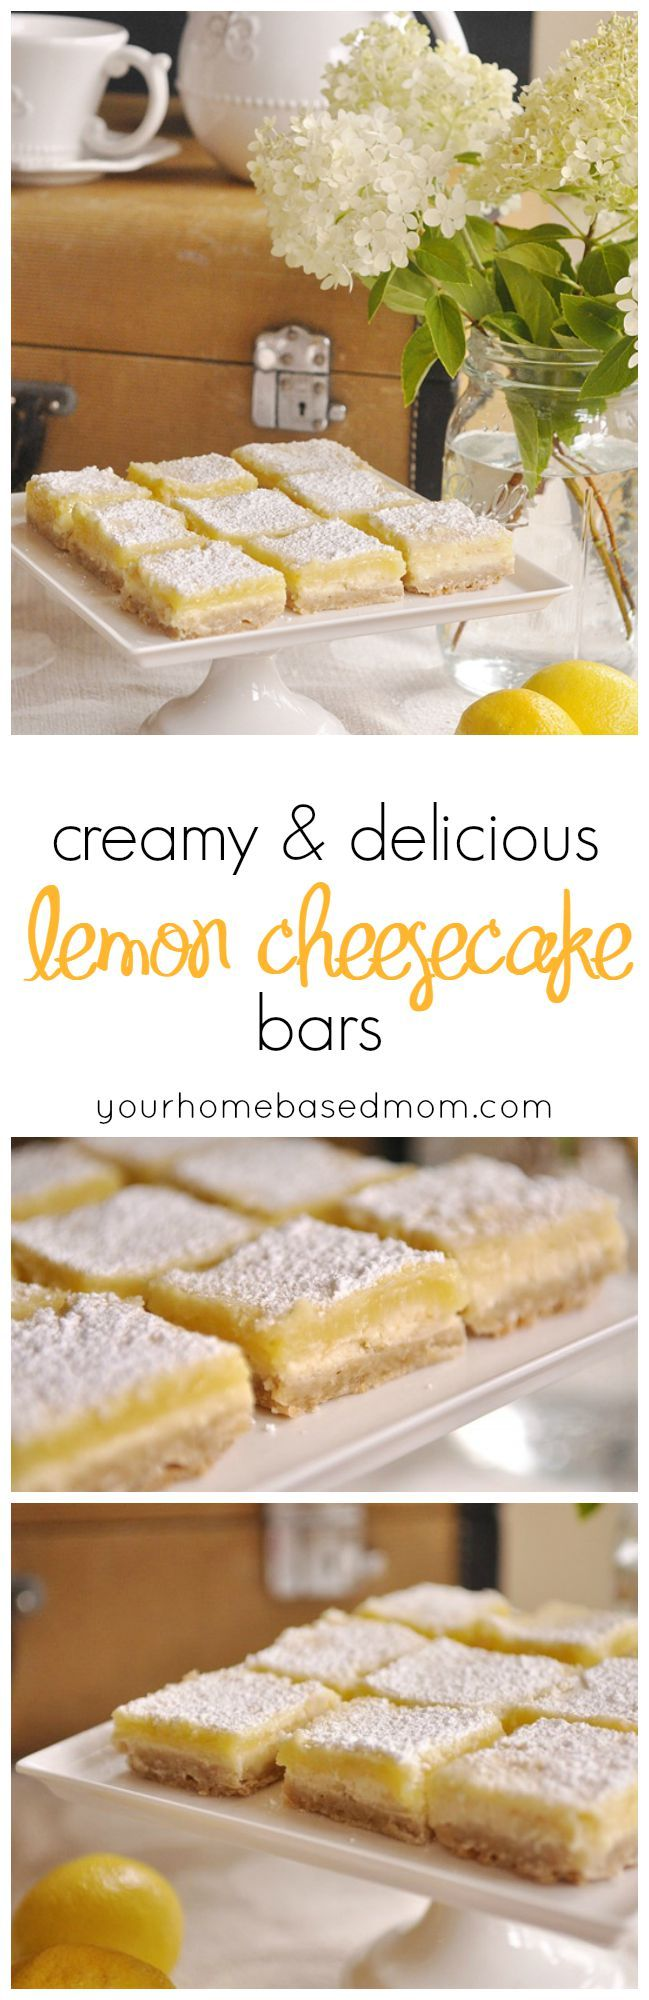 These lemon cheesecake bars are the most delicious and creamy lemon bars you will taste.